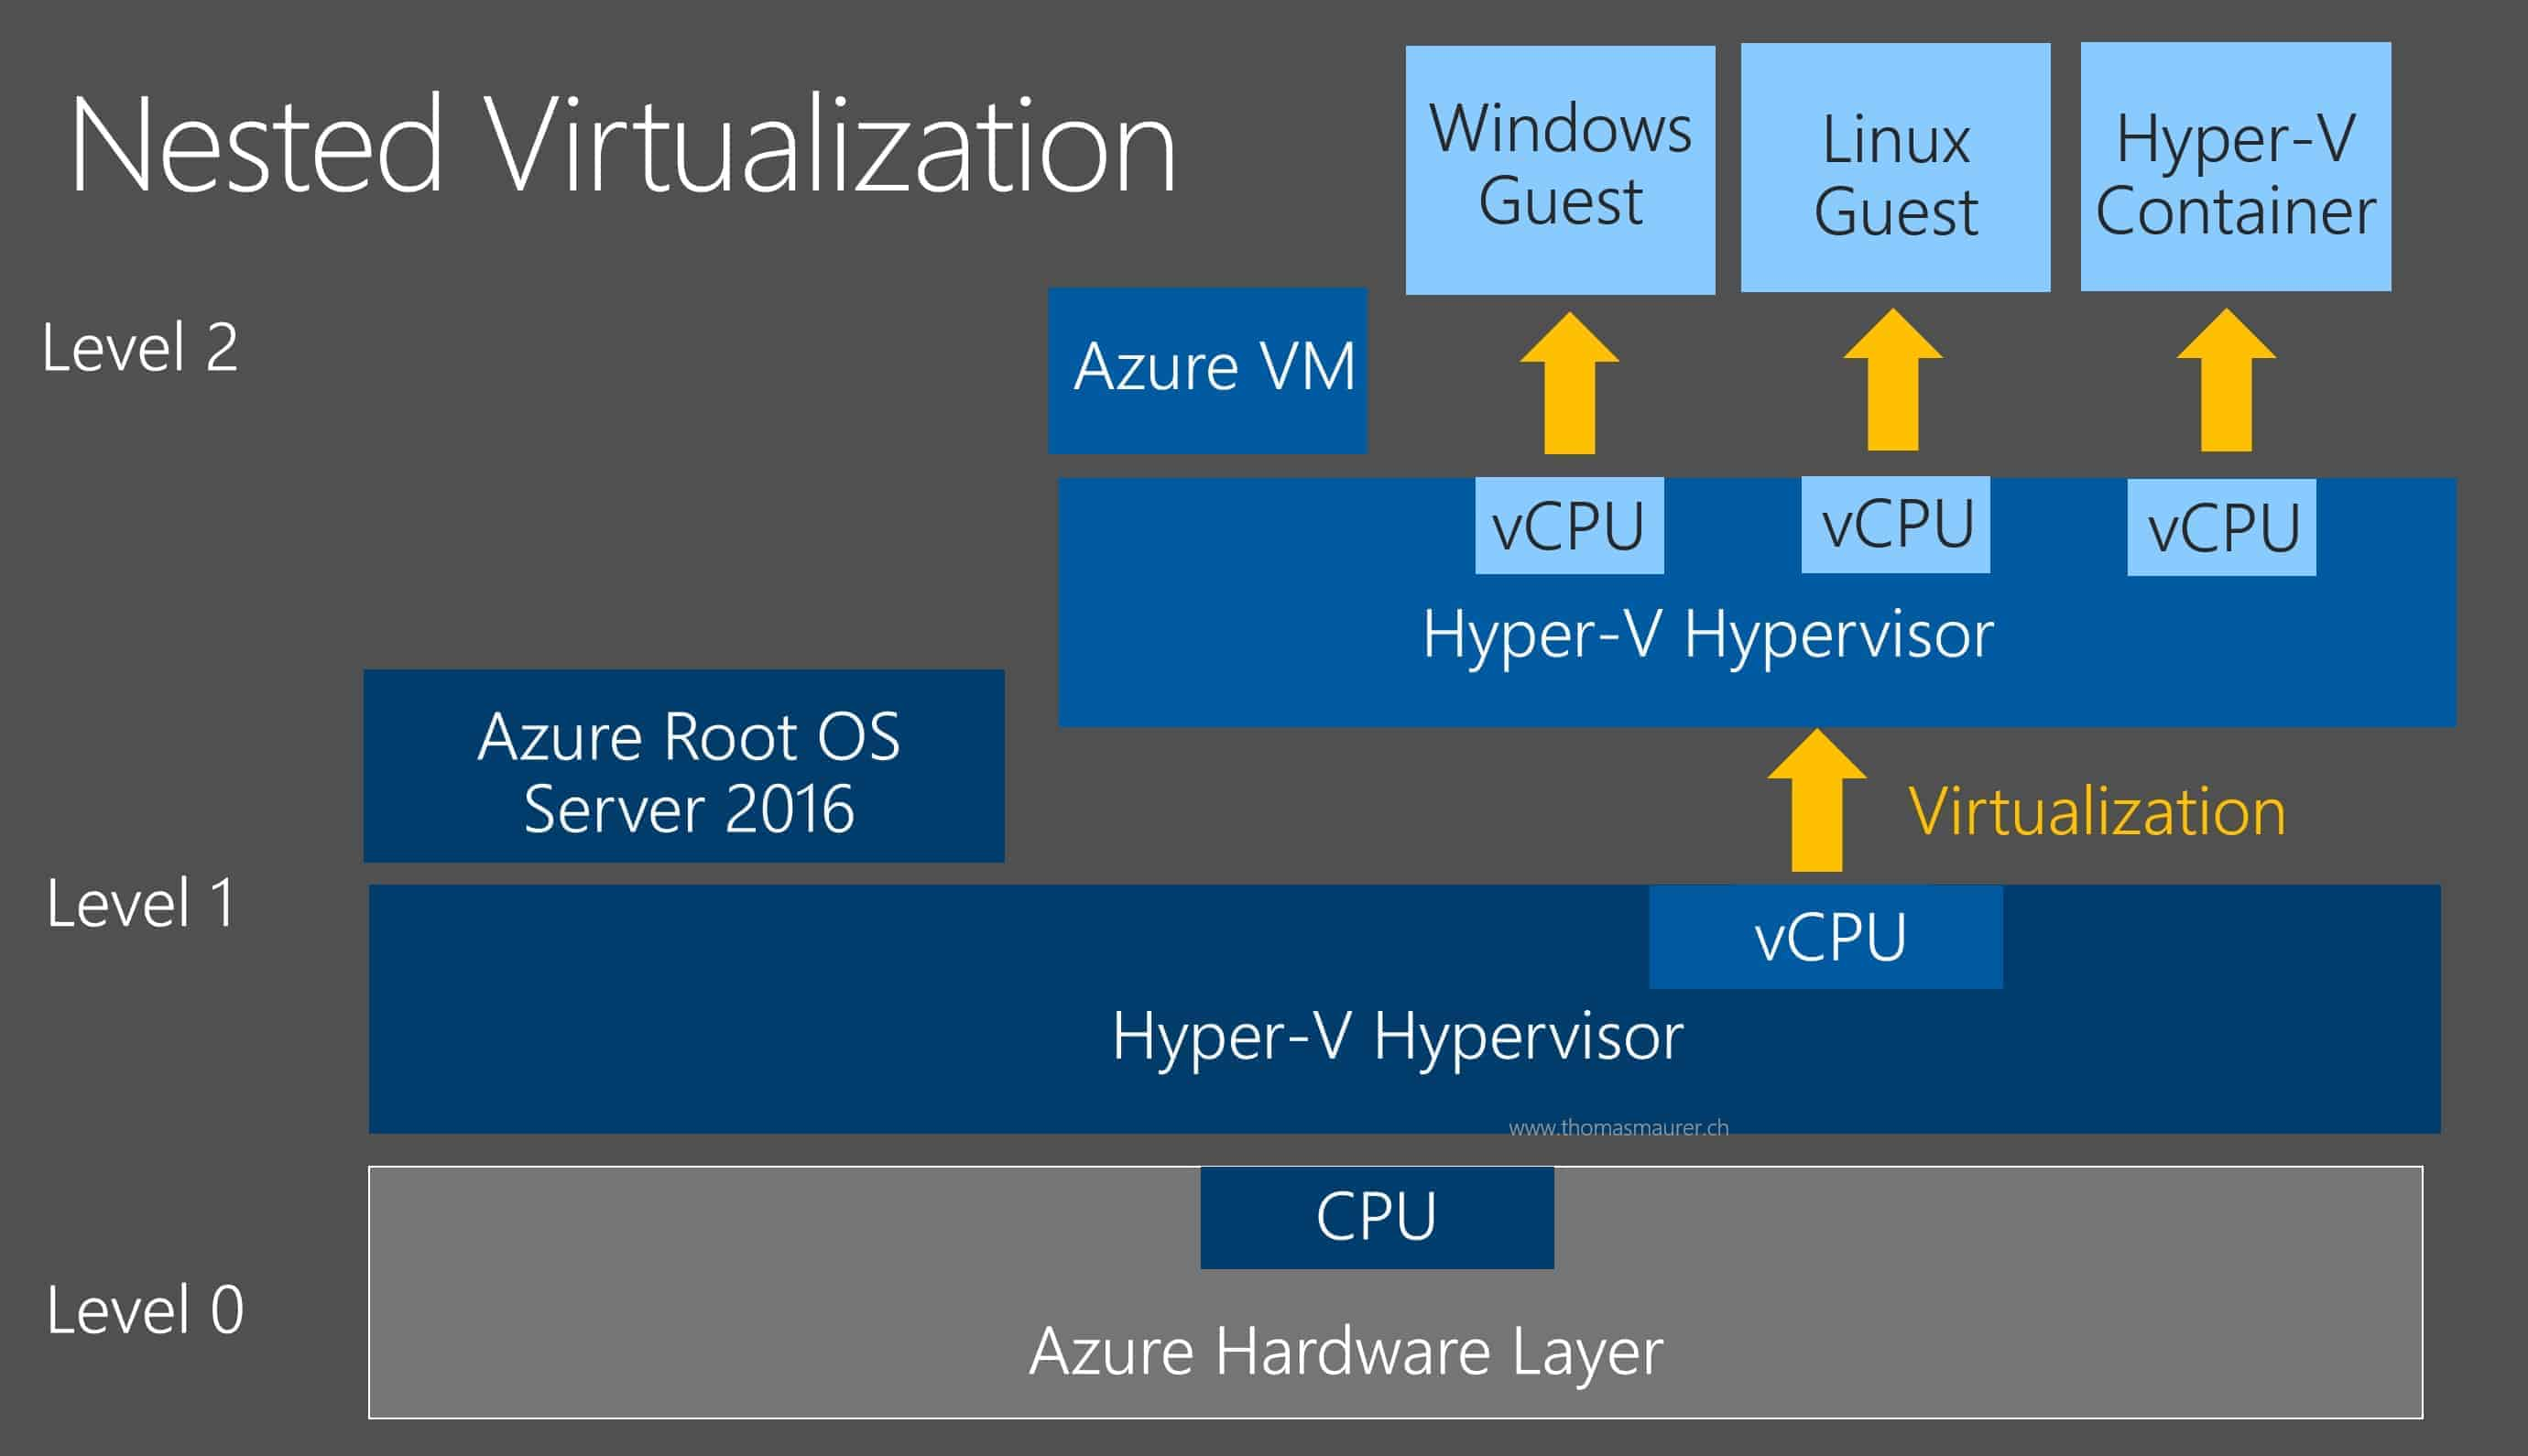 hyper v container and nested virtualization in microsoft azure